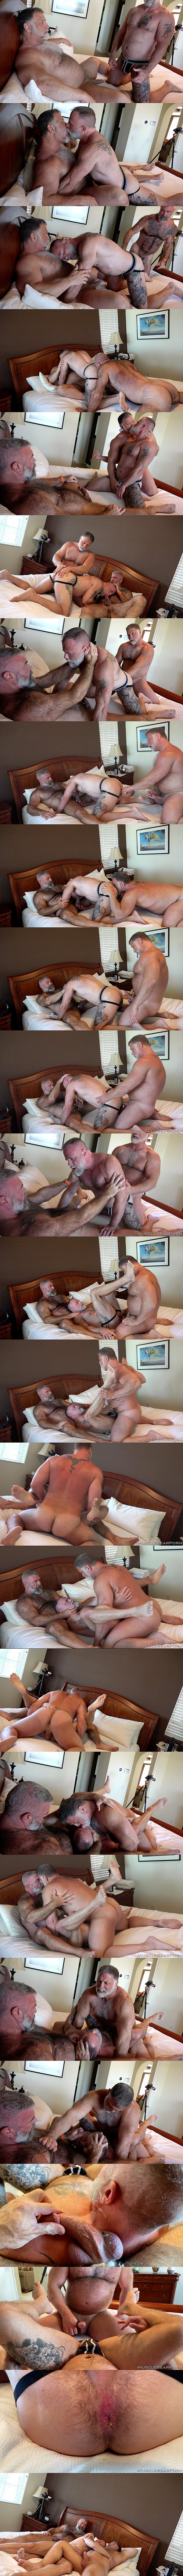 Hairy muscle daddy Rick Kelson barebacks bear bottom Liam Angell in a threeway with Will Angell before Rick creampies Liam in Big Daddy Fucker at Musclebearporn 01